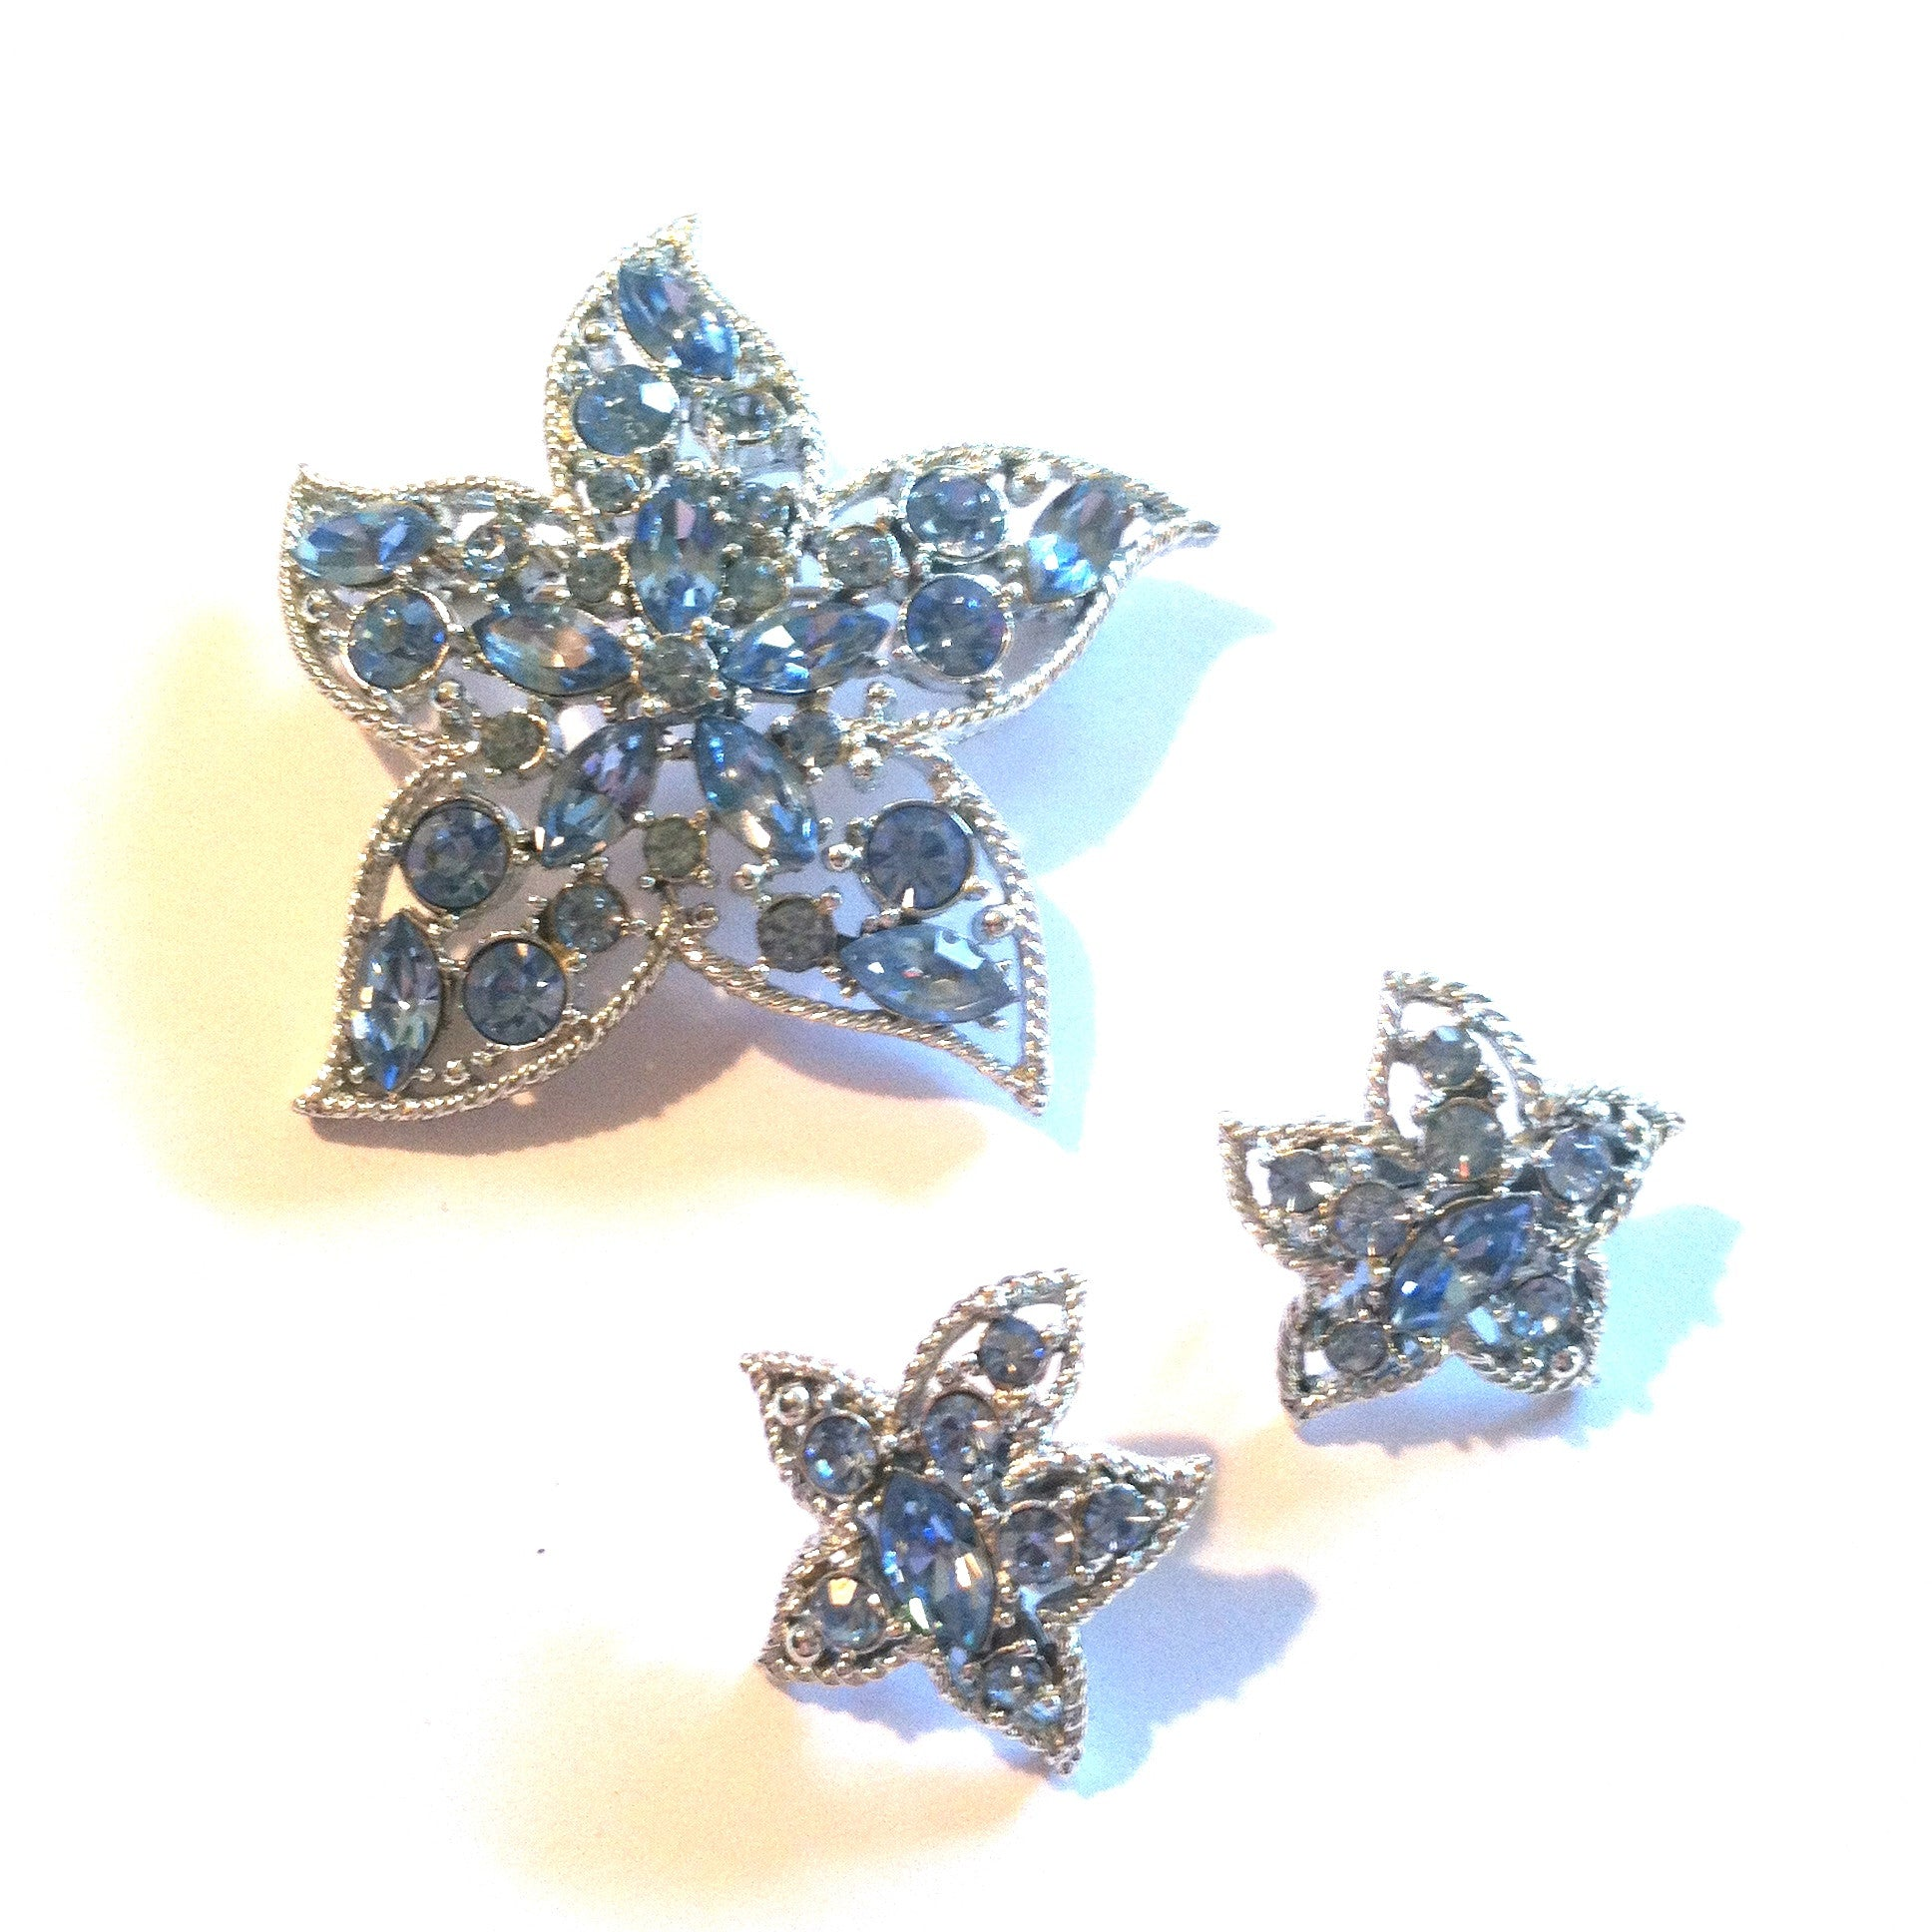 Star Fire Blue Rhinestone Brooch and Clip Earrings circa 1960s Dorothea's Closet Vintage Jewelry Sarah Coventry